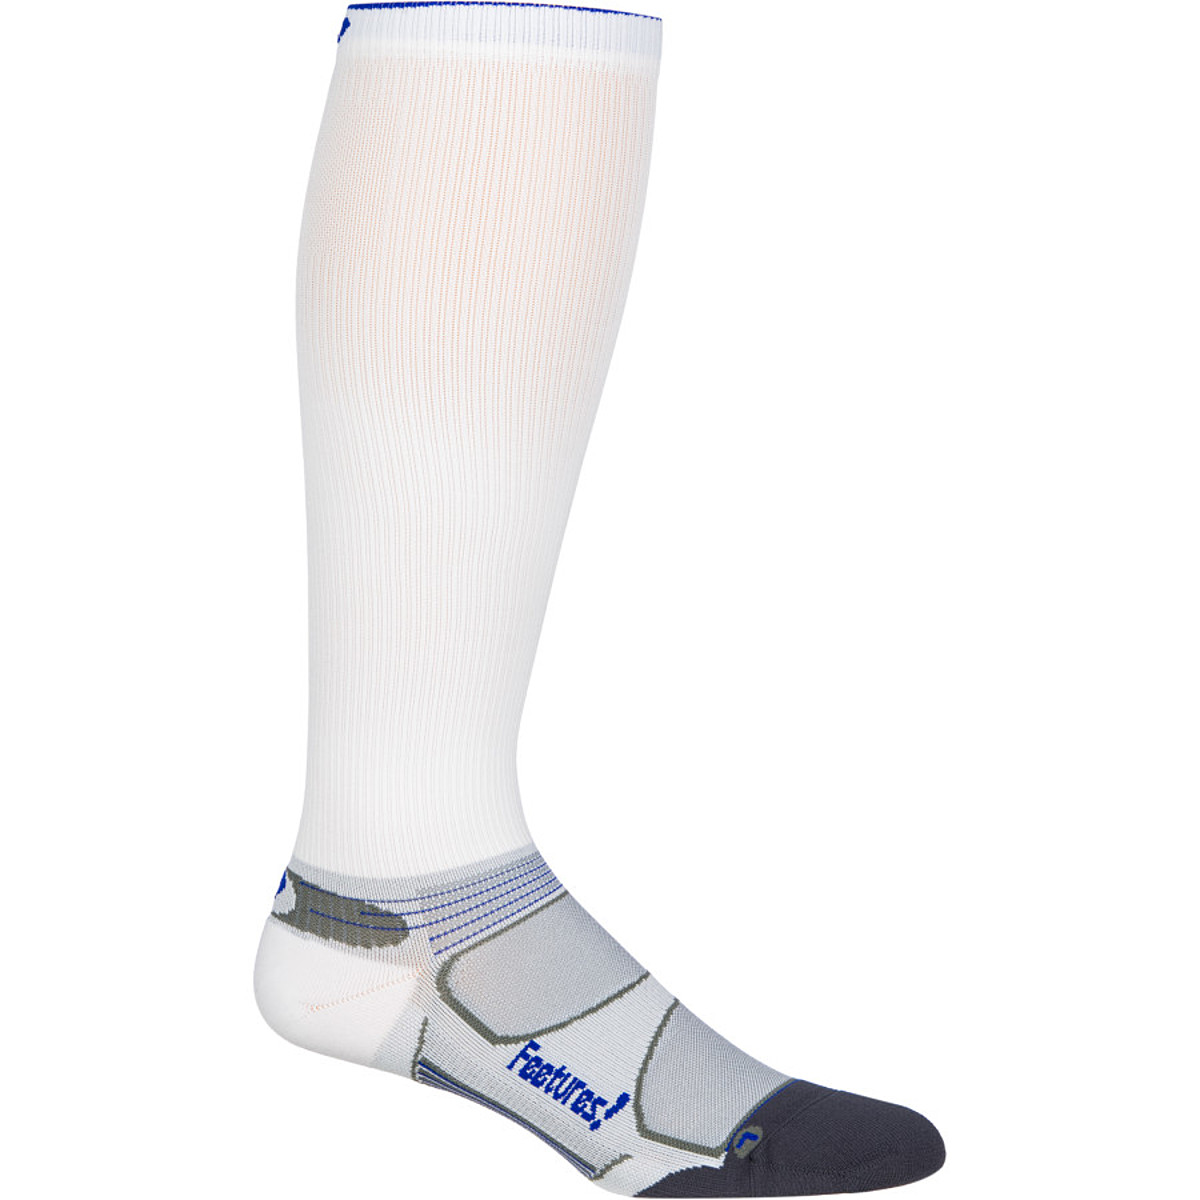 Feetures! Elite Light Cushion Knee High Compression